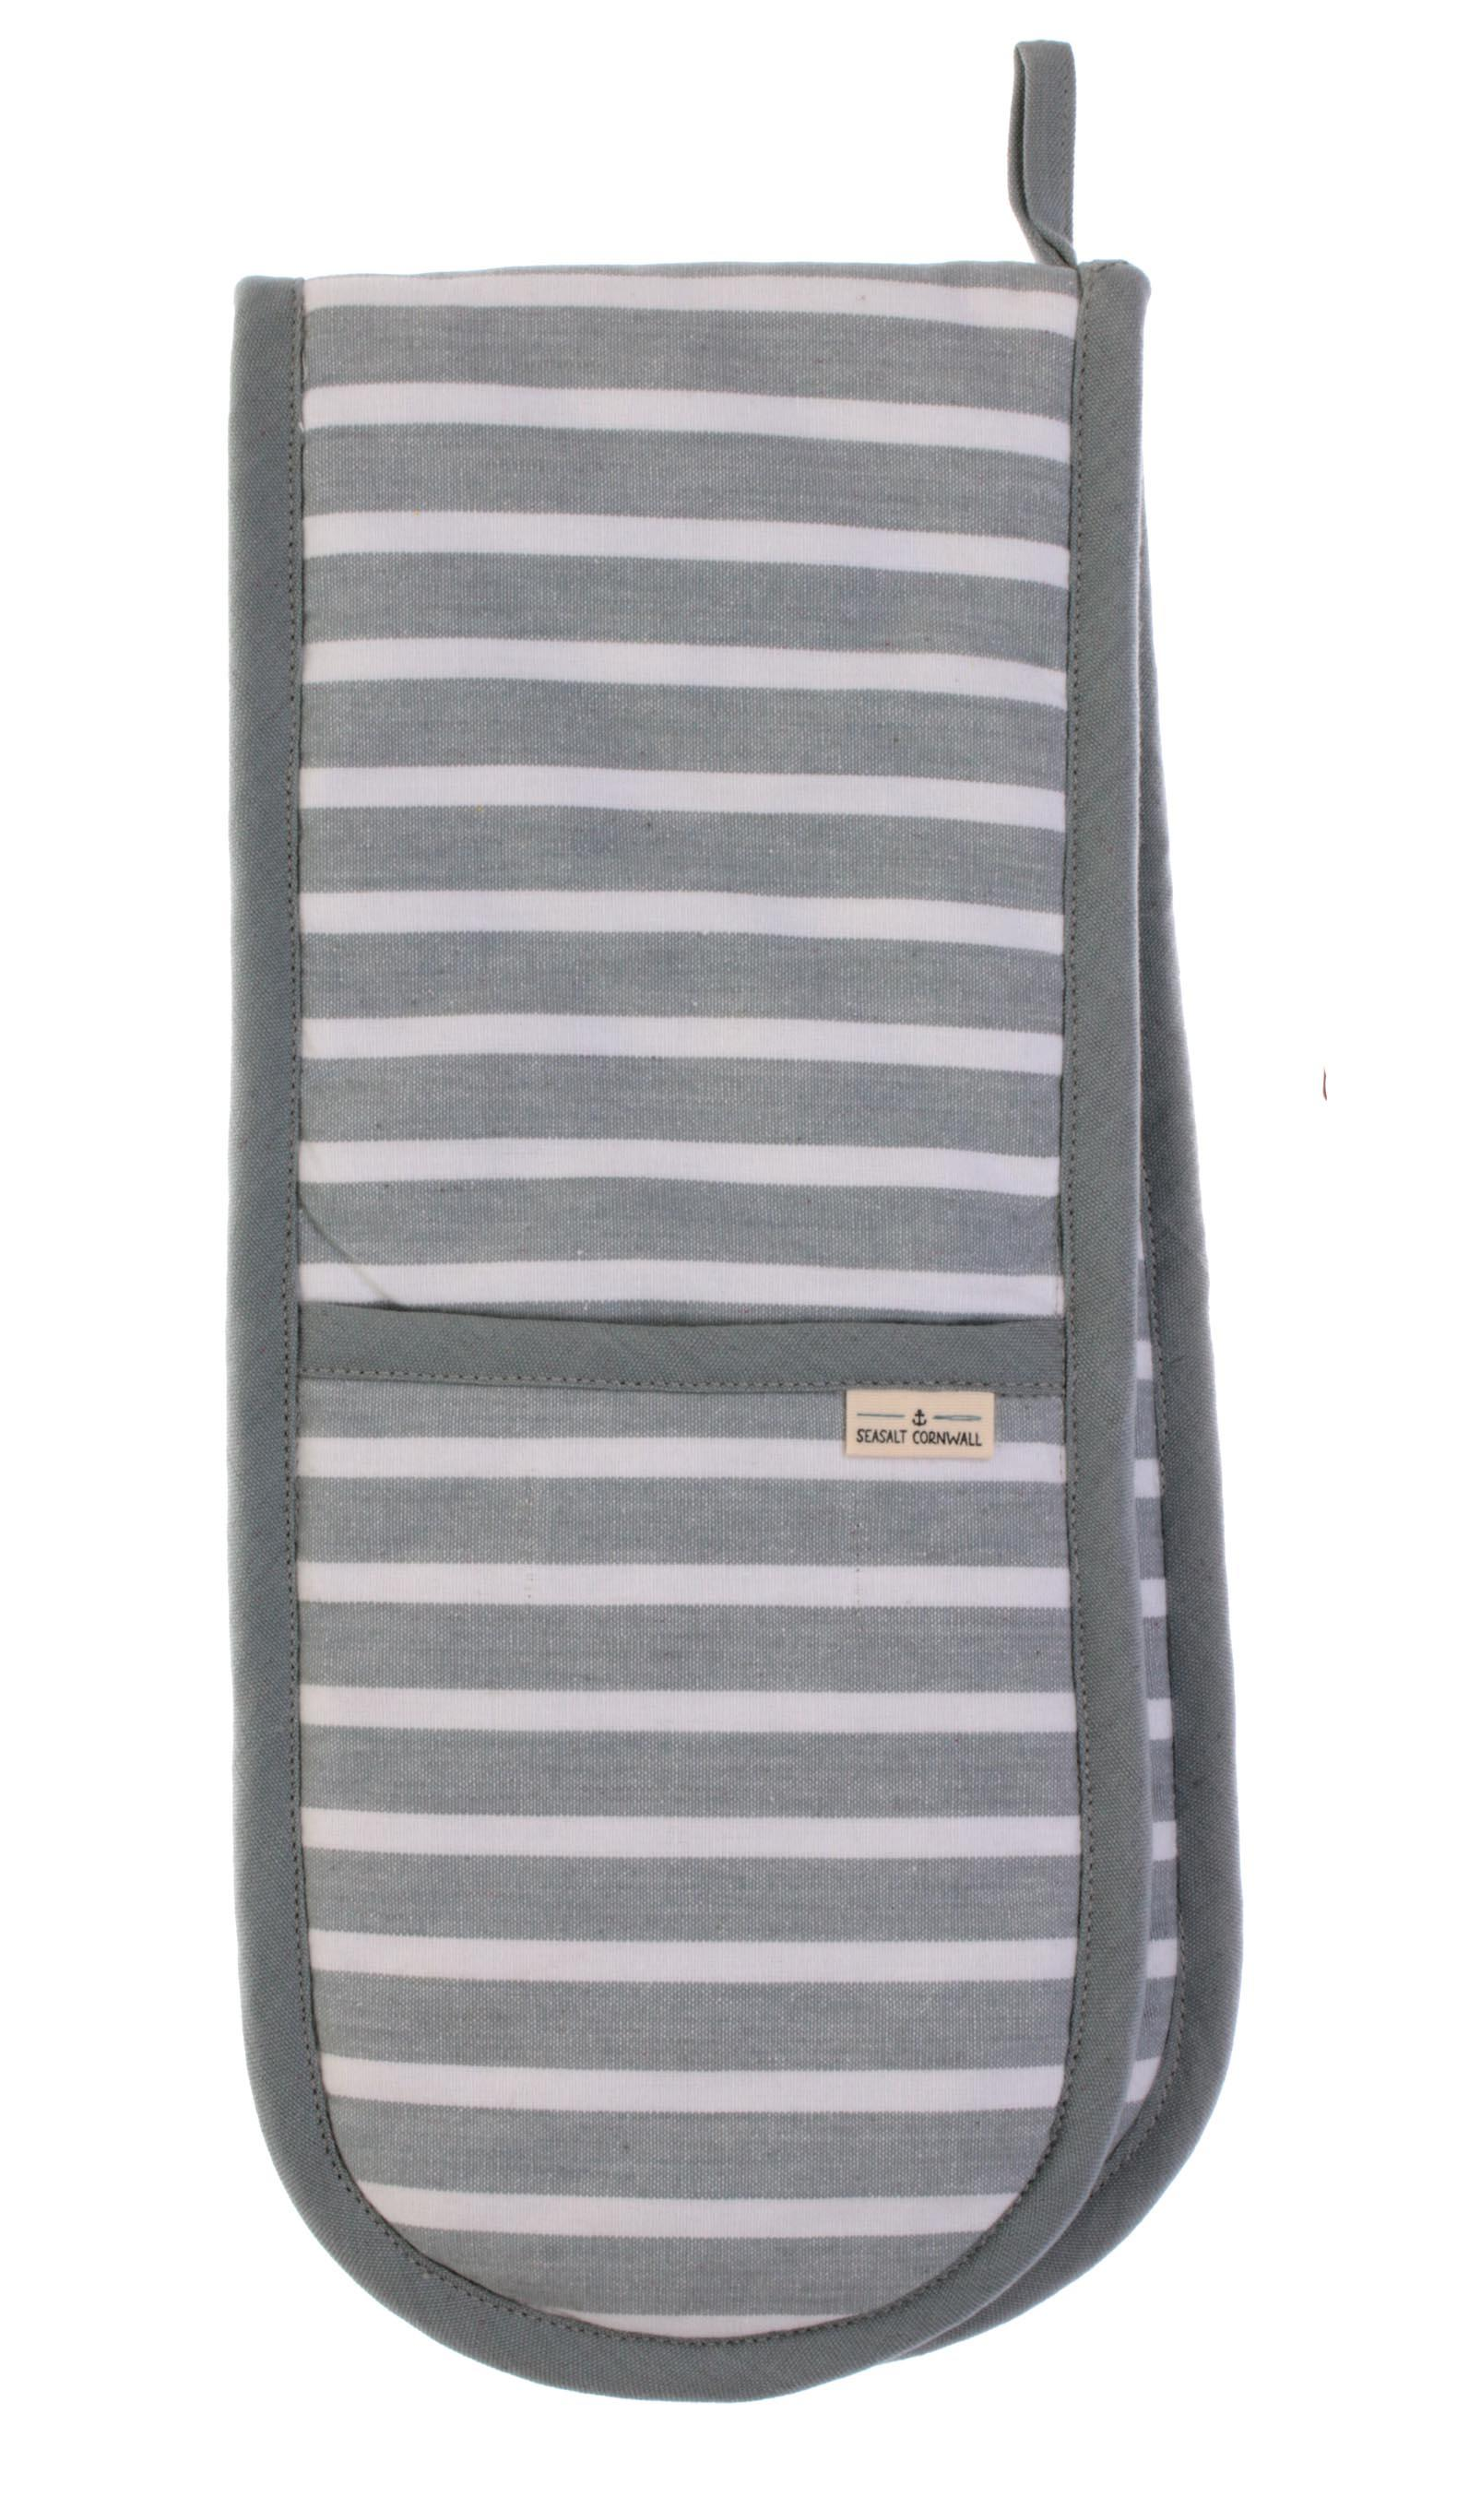 Seasalt Breton Quarry double oven glove